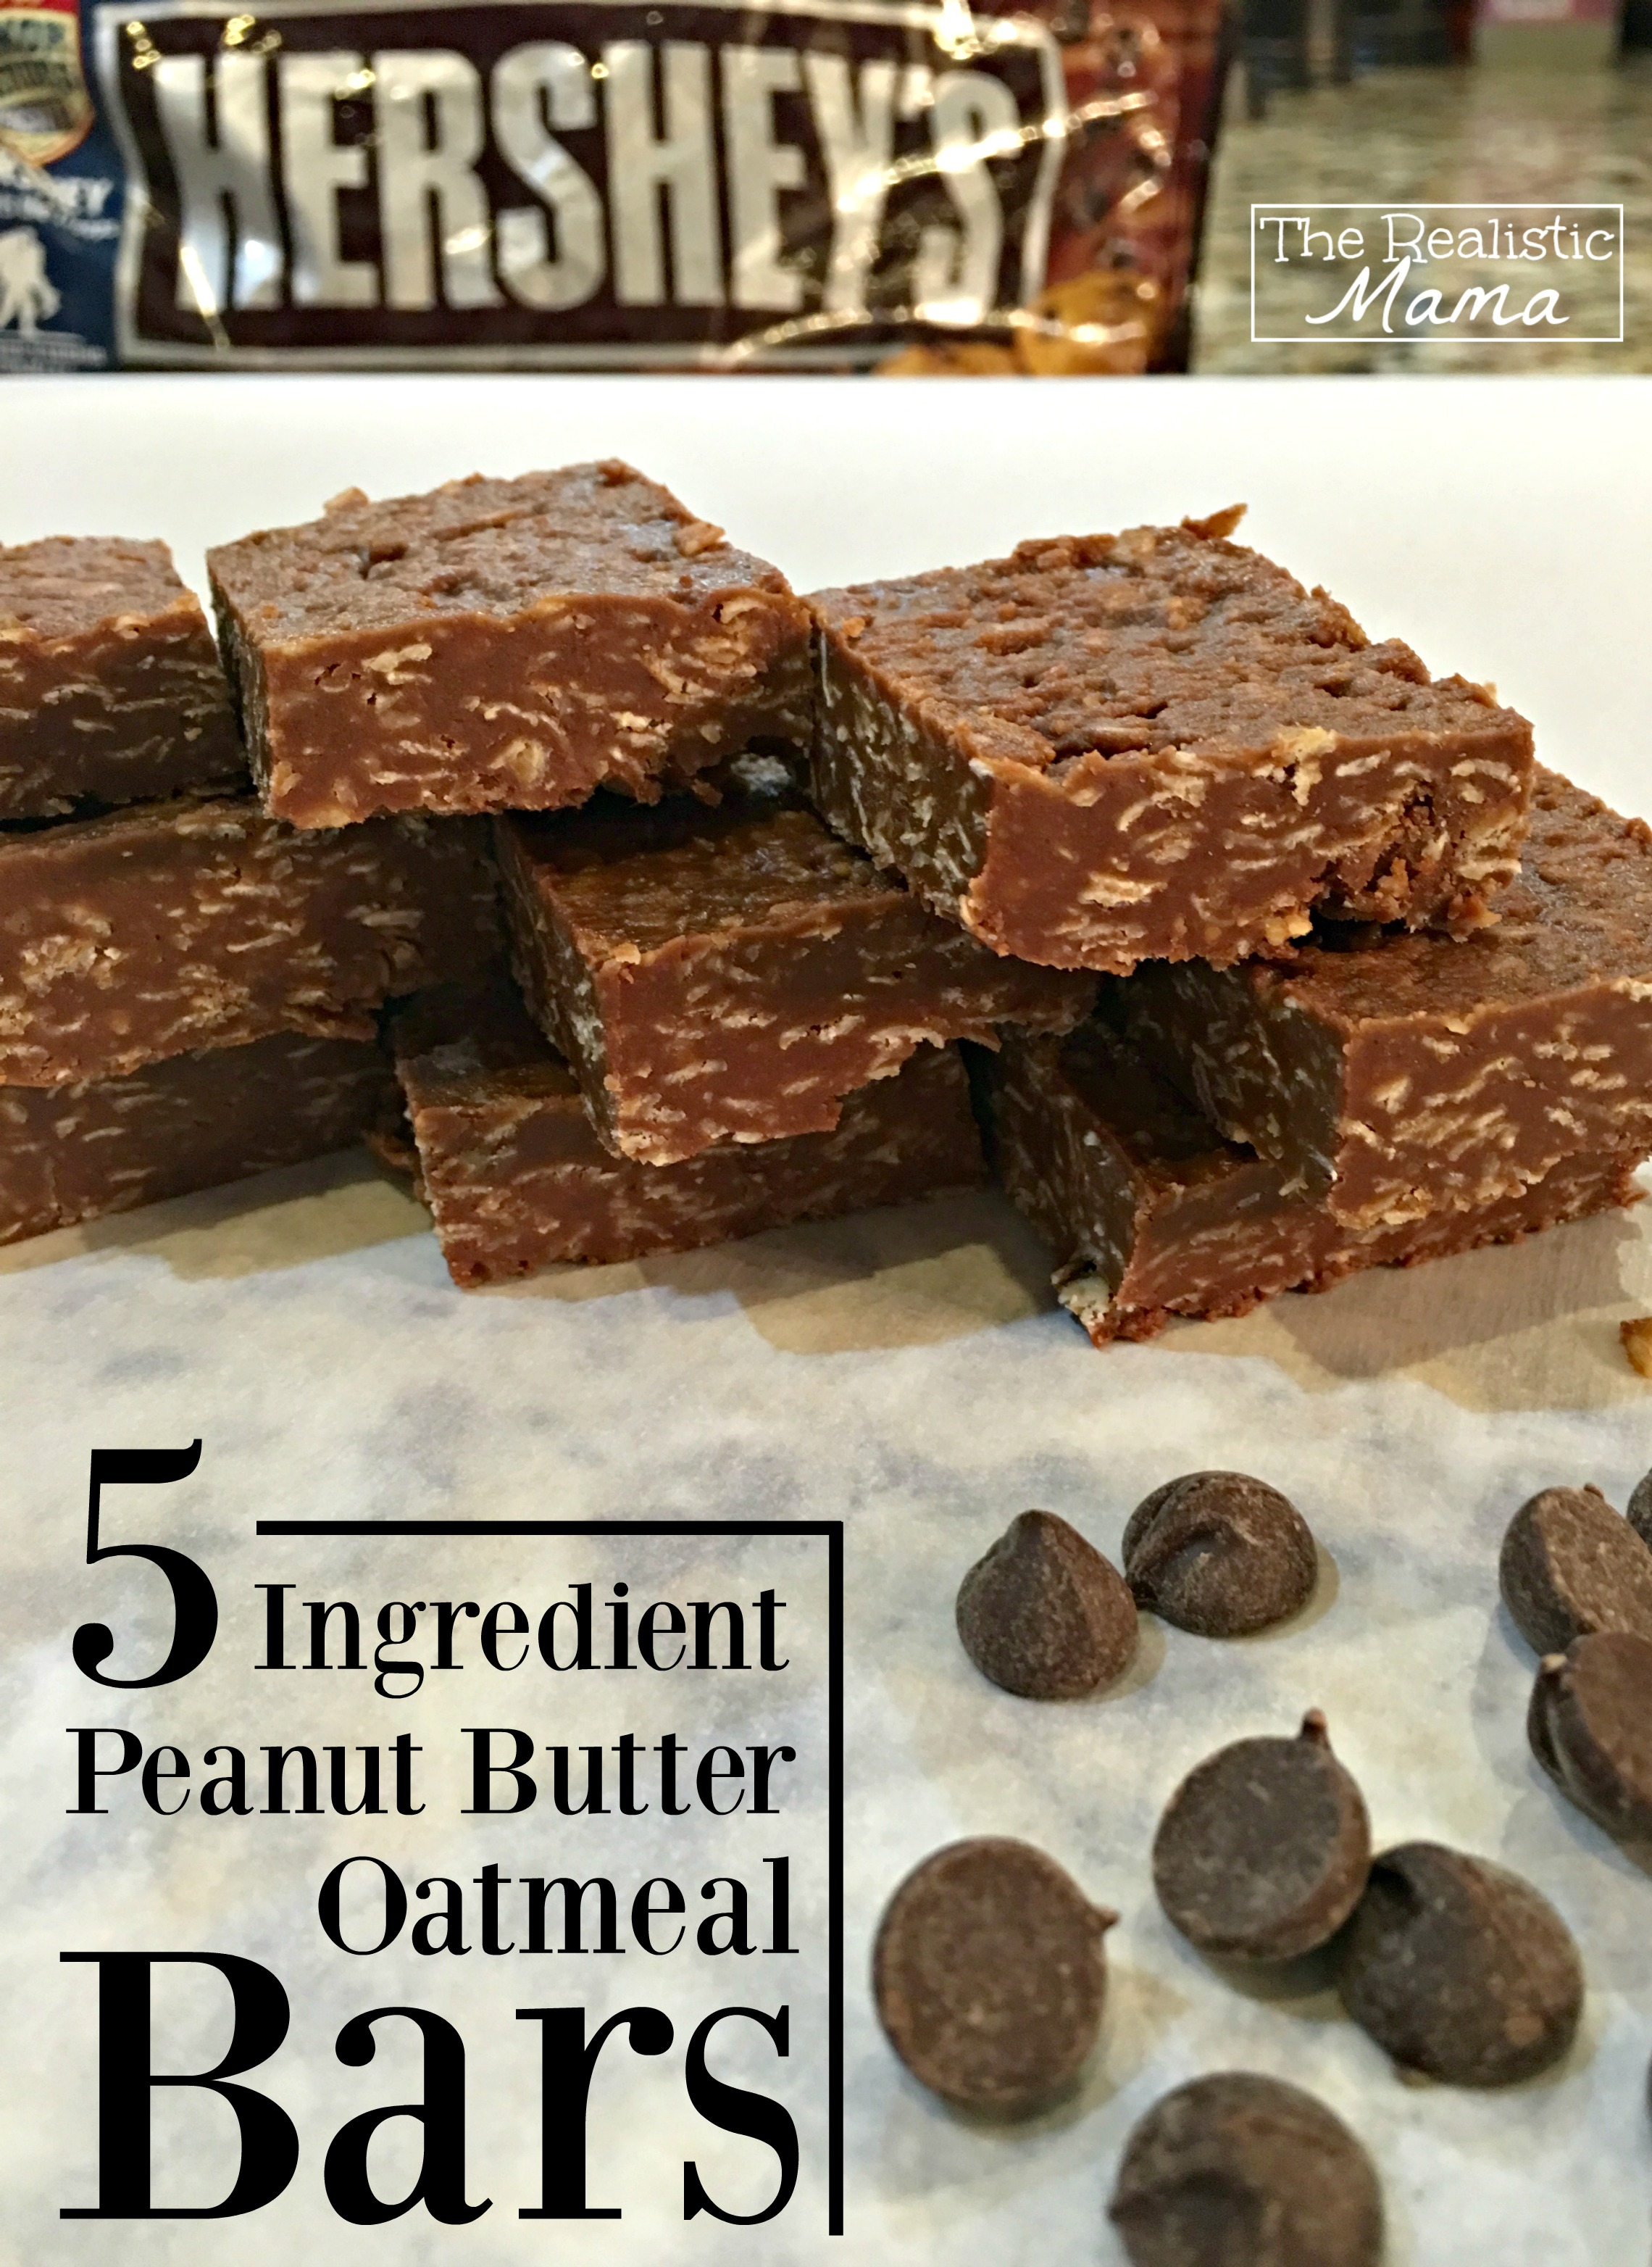 5 Ingredient Peanut Butter Oatmeal Bars - Yummy!